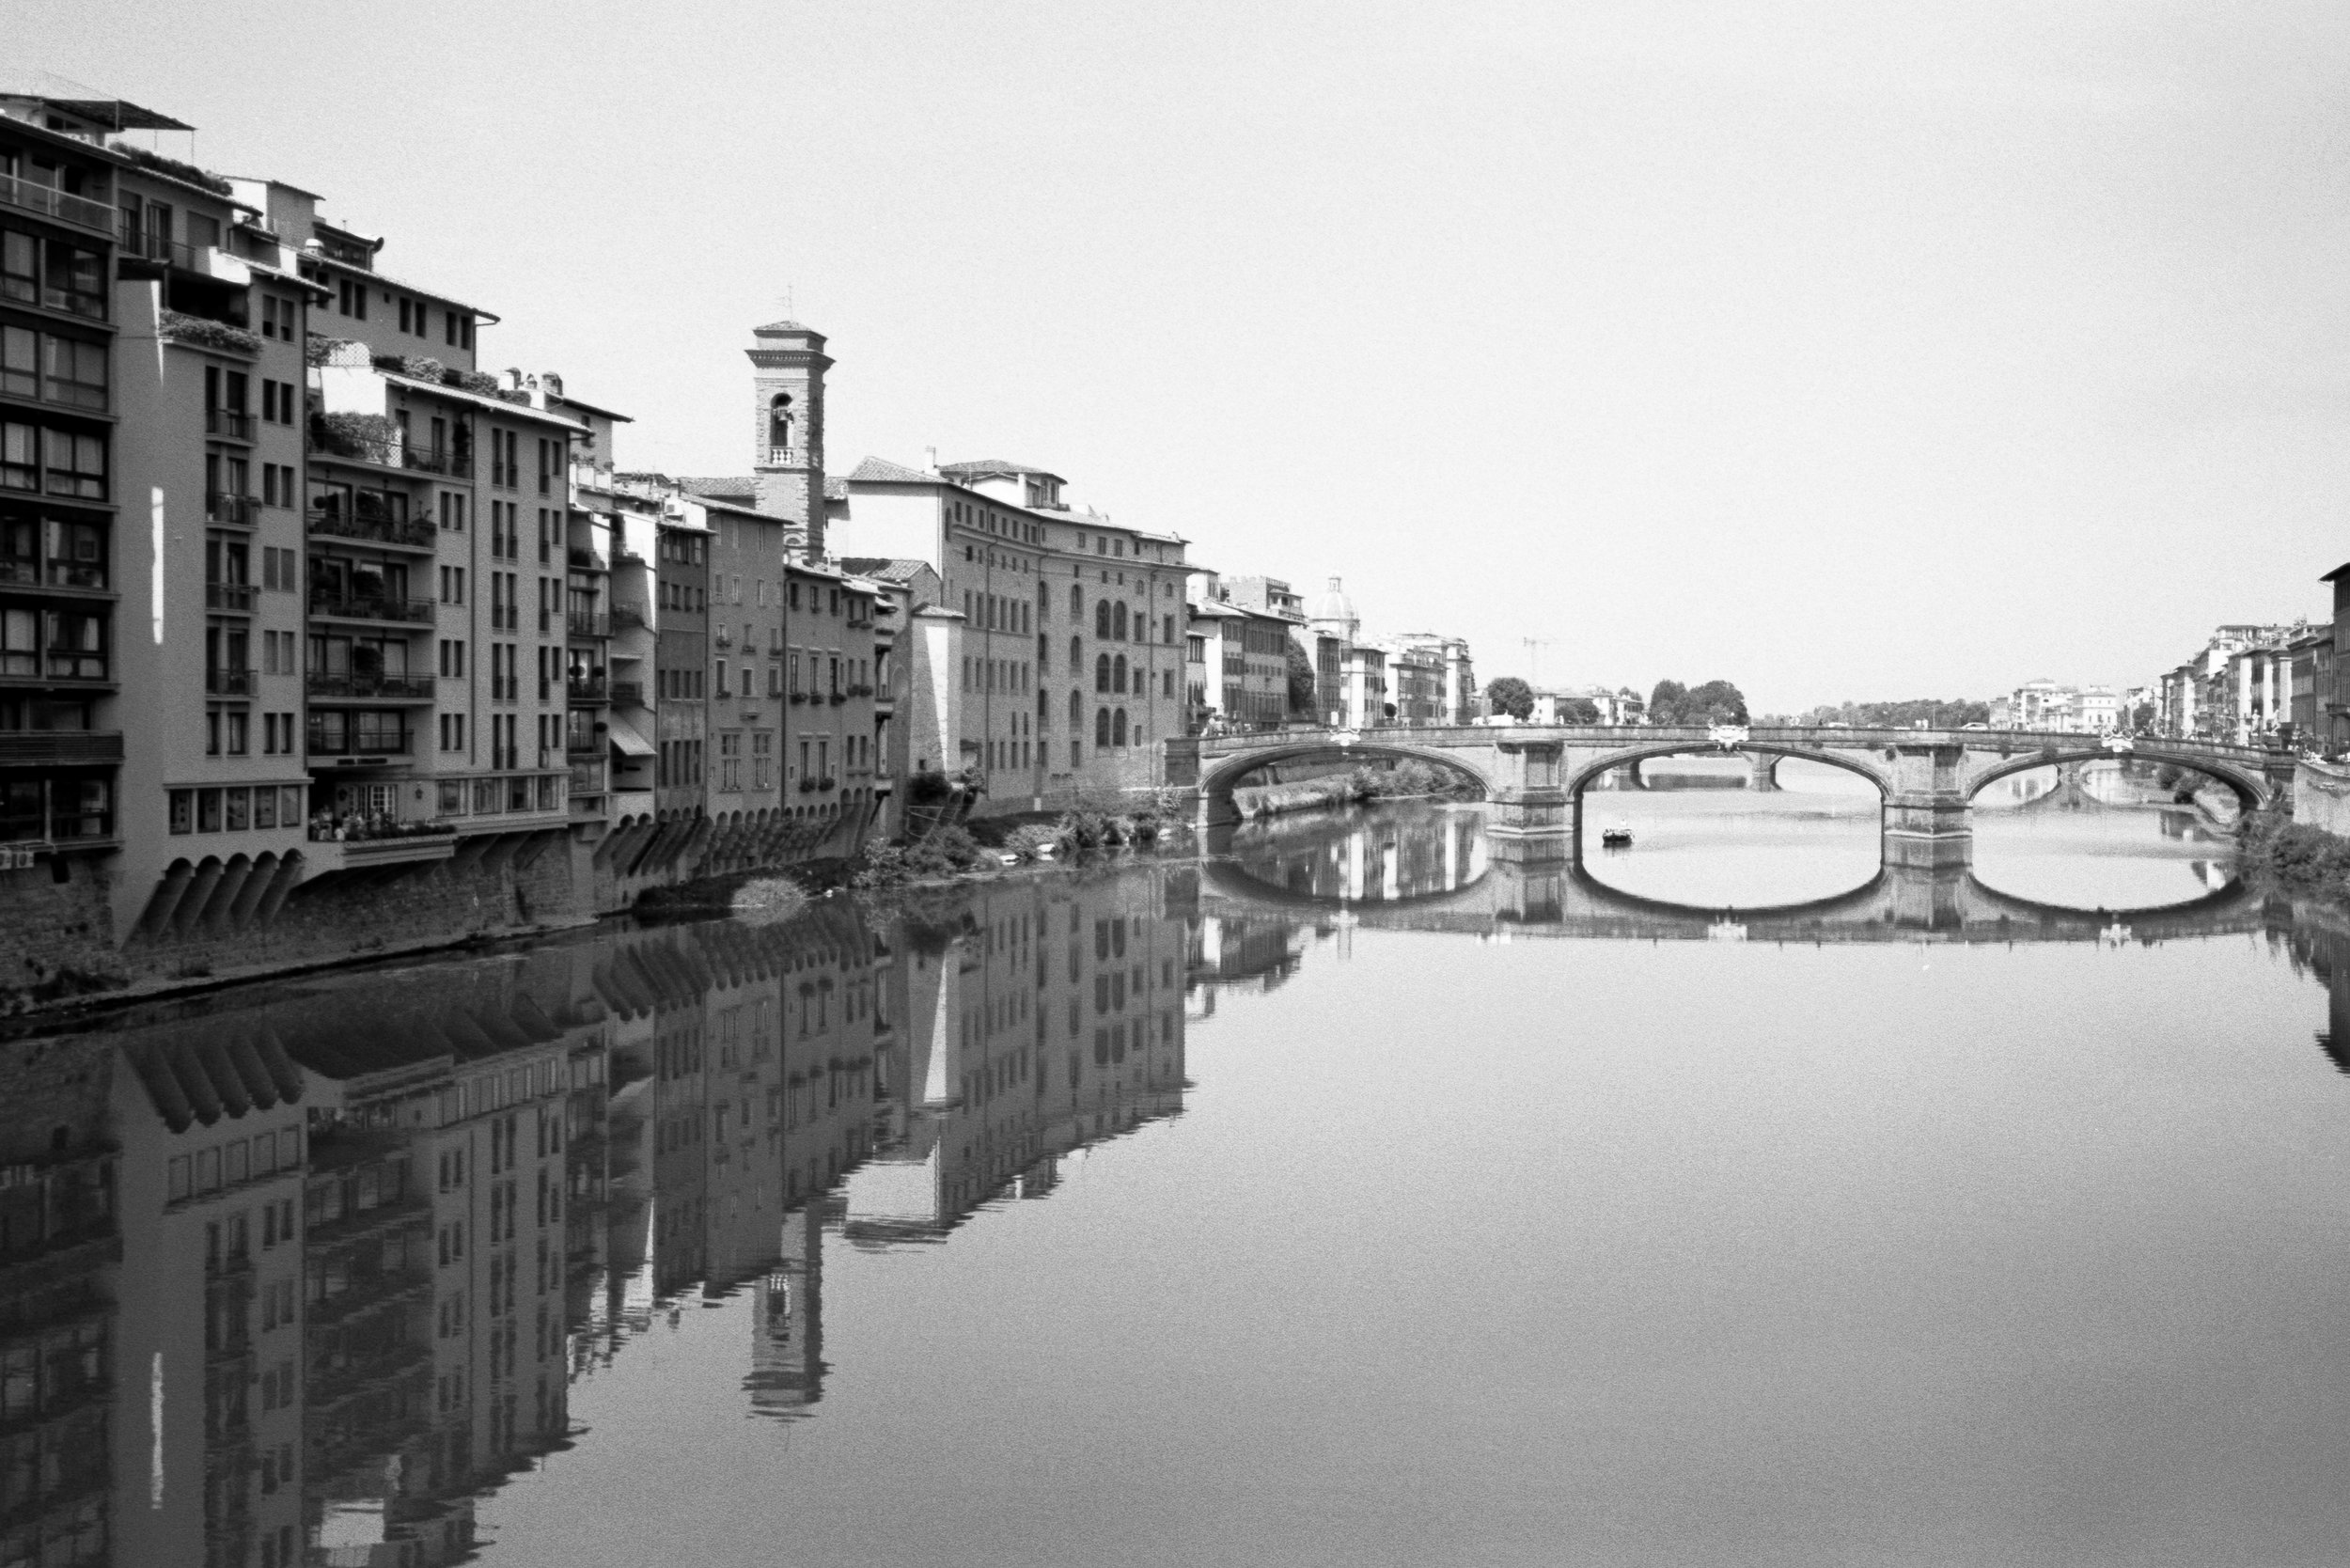 The Arno, Florence. Italy. 2019.